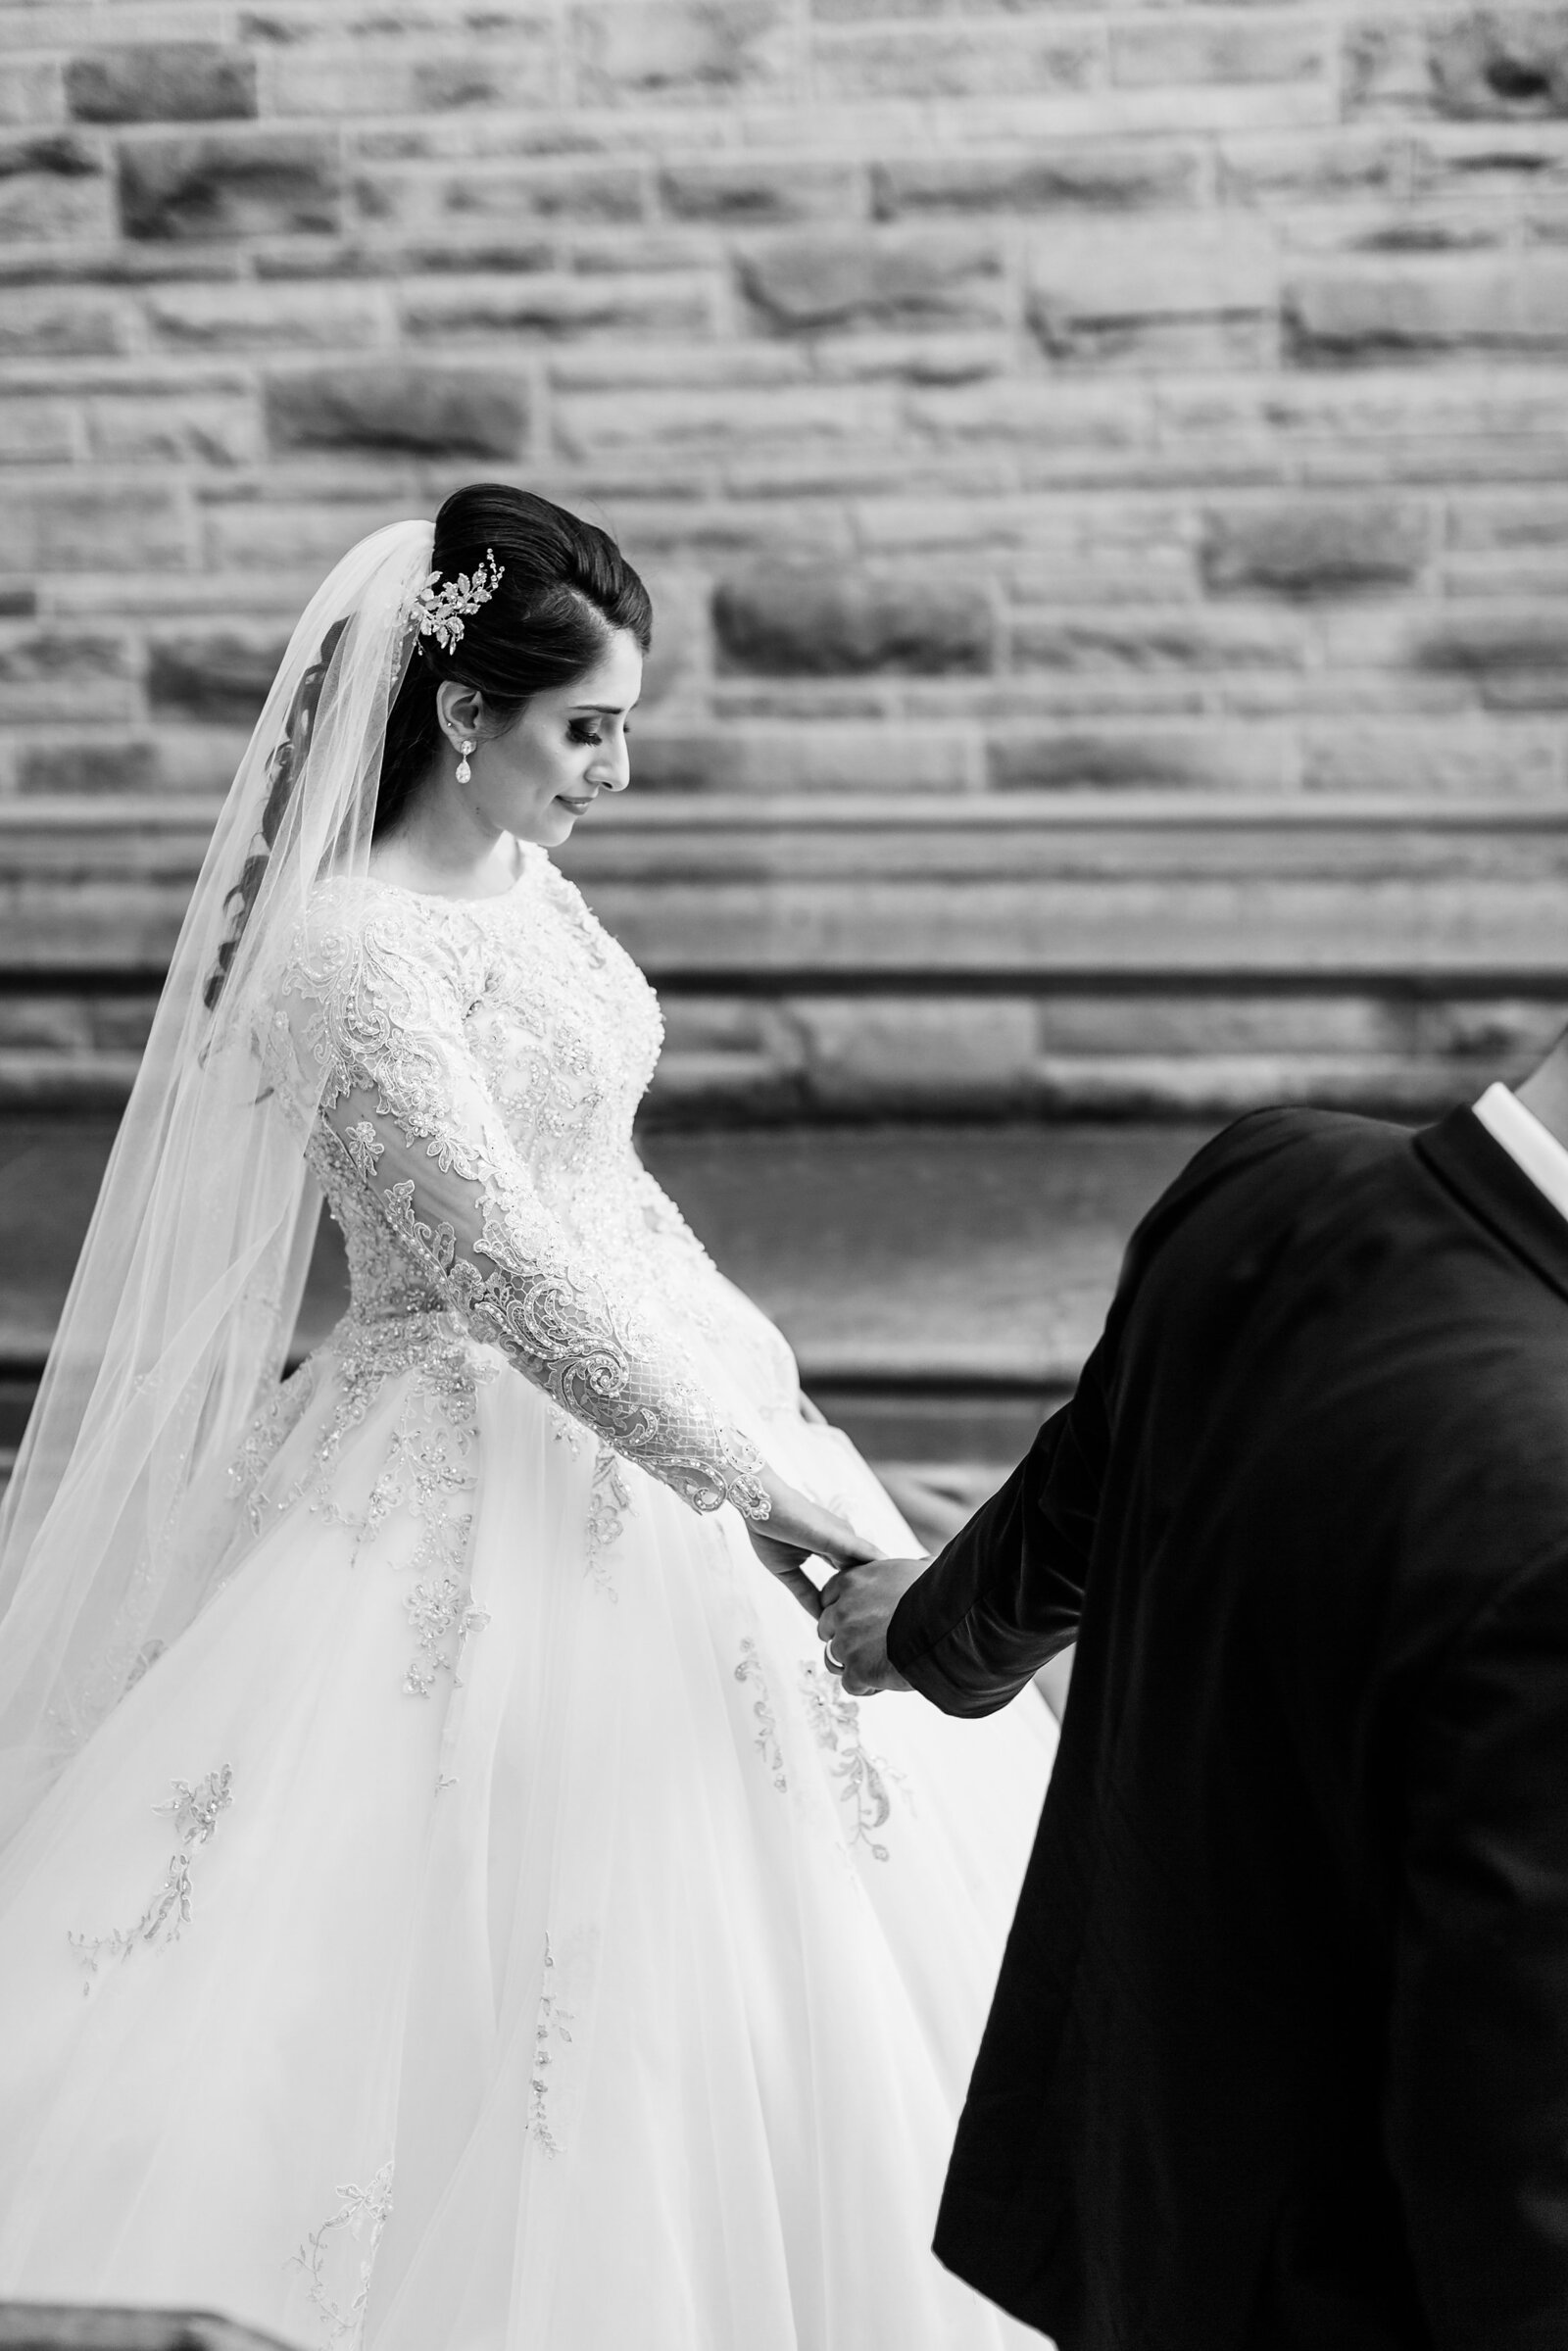 Lebanese-bride-follows-her-husband-down-the-steps-at-western-university-during-their-wedding-portraits